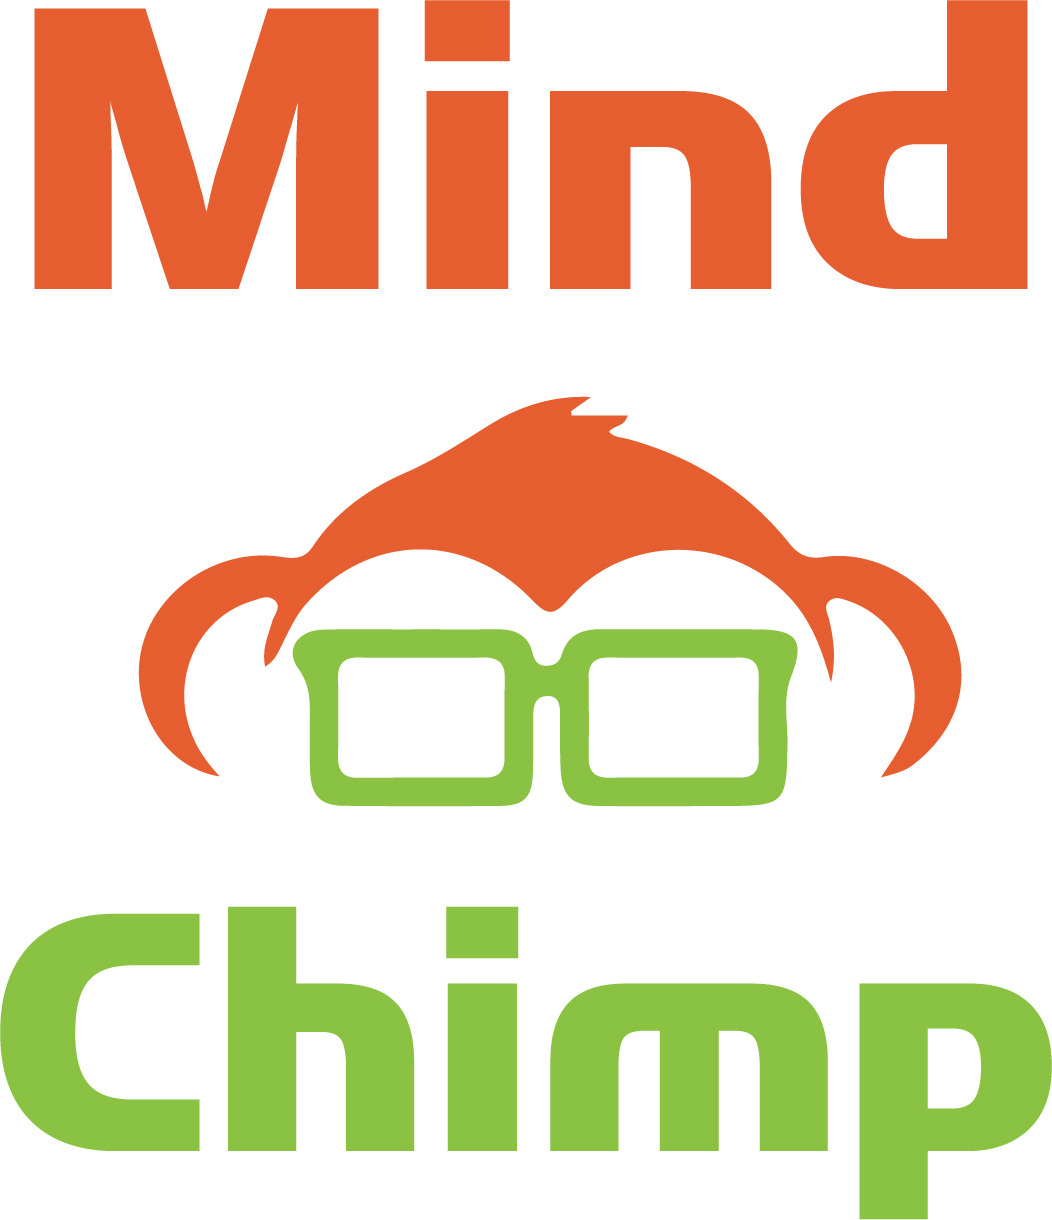 Welcome to The MindChimp Podcast - Season 1 Introduction